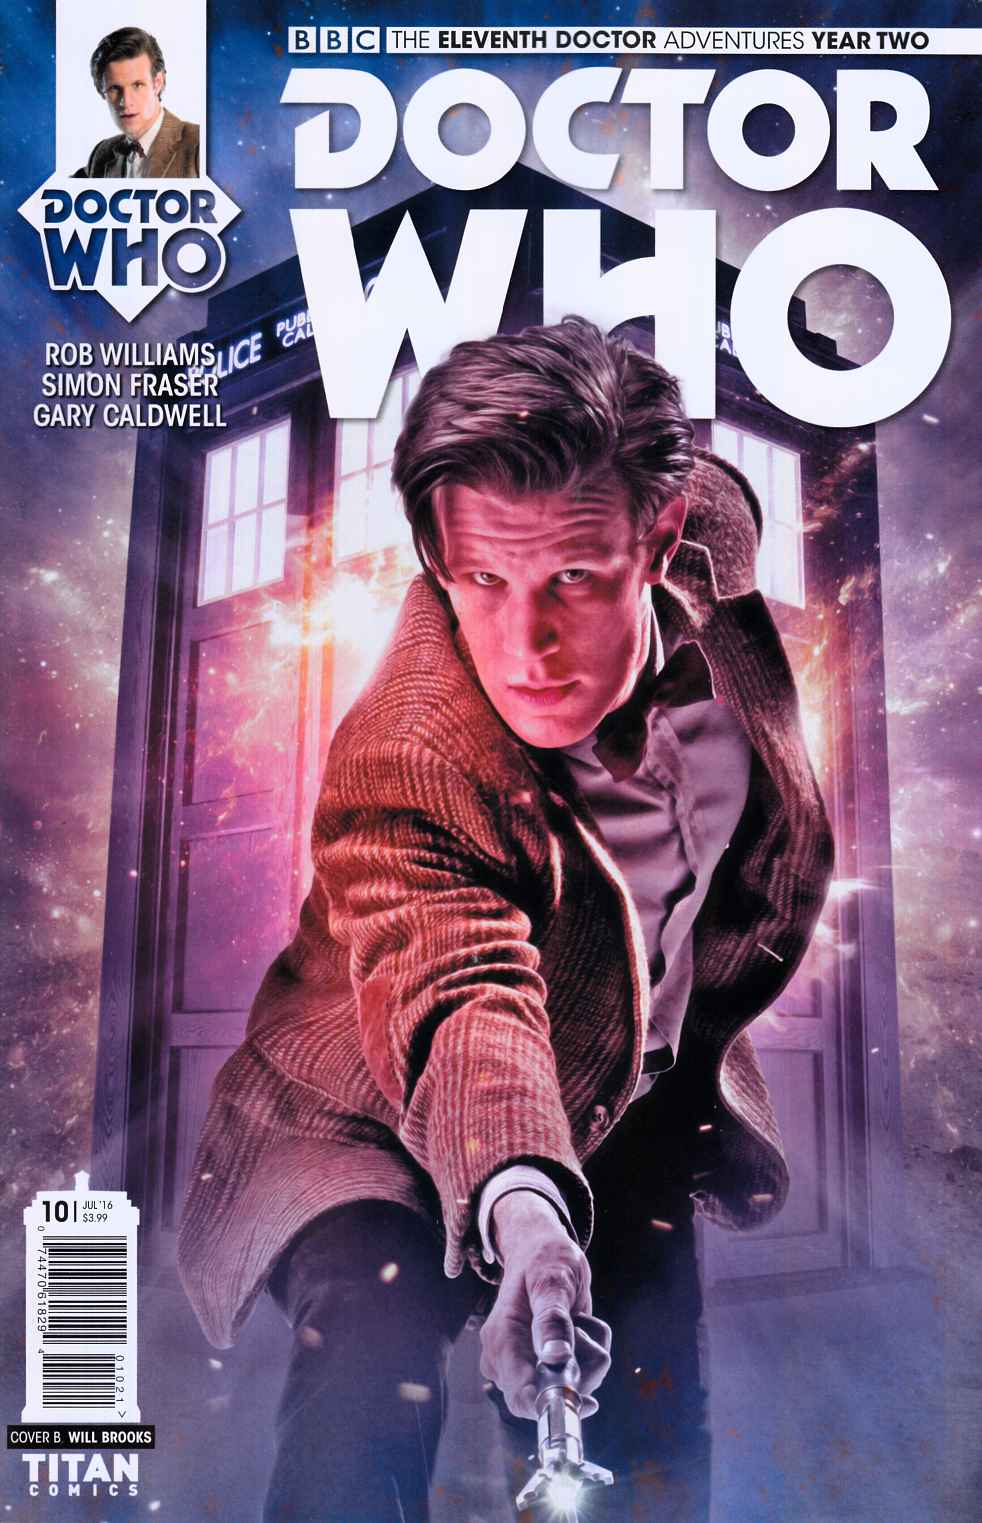 Doctor Who 11th Doctor Year Two #10 Cover B [Titan Comic] THUMBNAIL